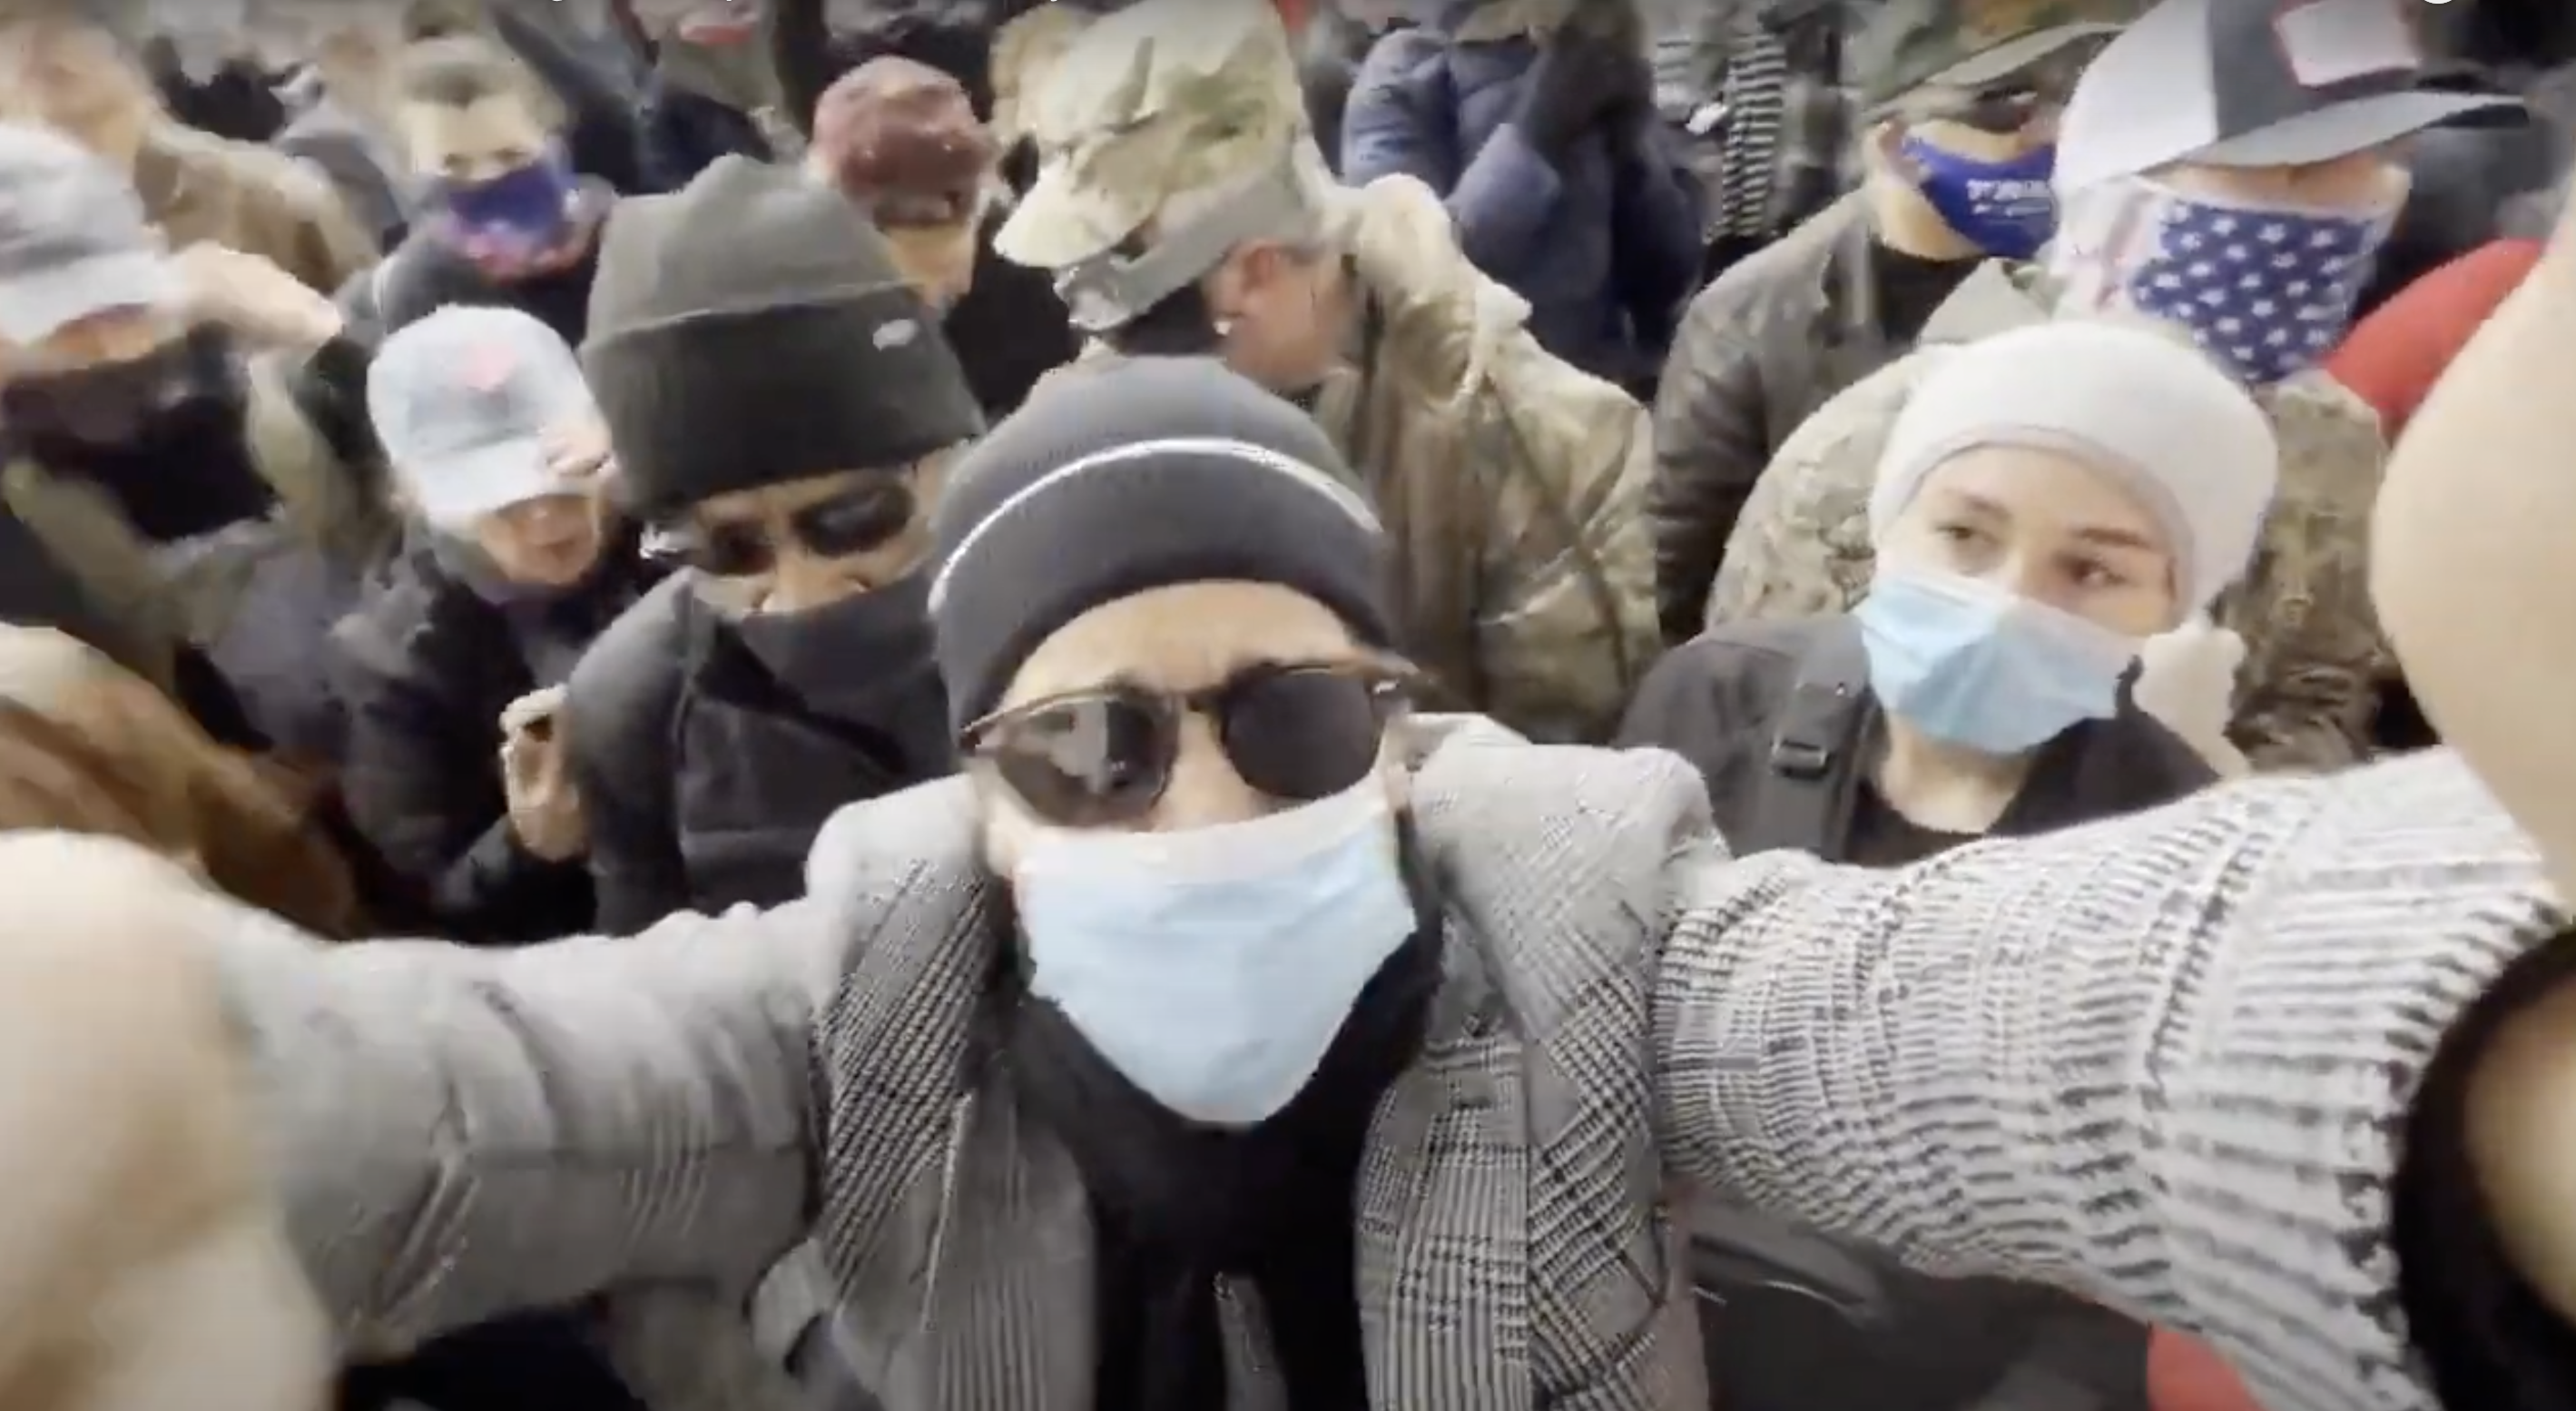 In a video screenshot, Brandon Straka, wearing a beanie, sunglasses, face mask, and jacket, looks into the camera amid a crowd of people